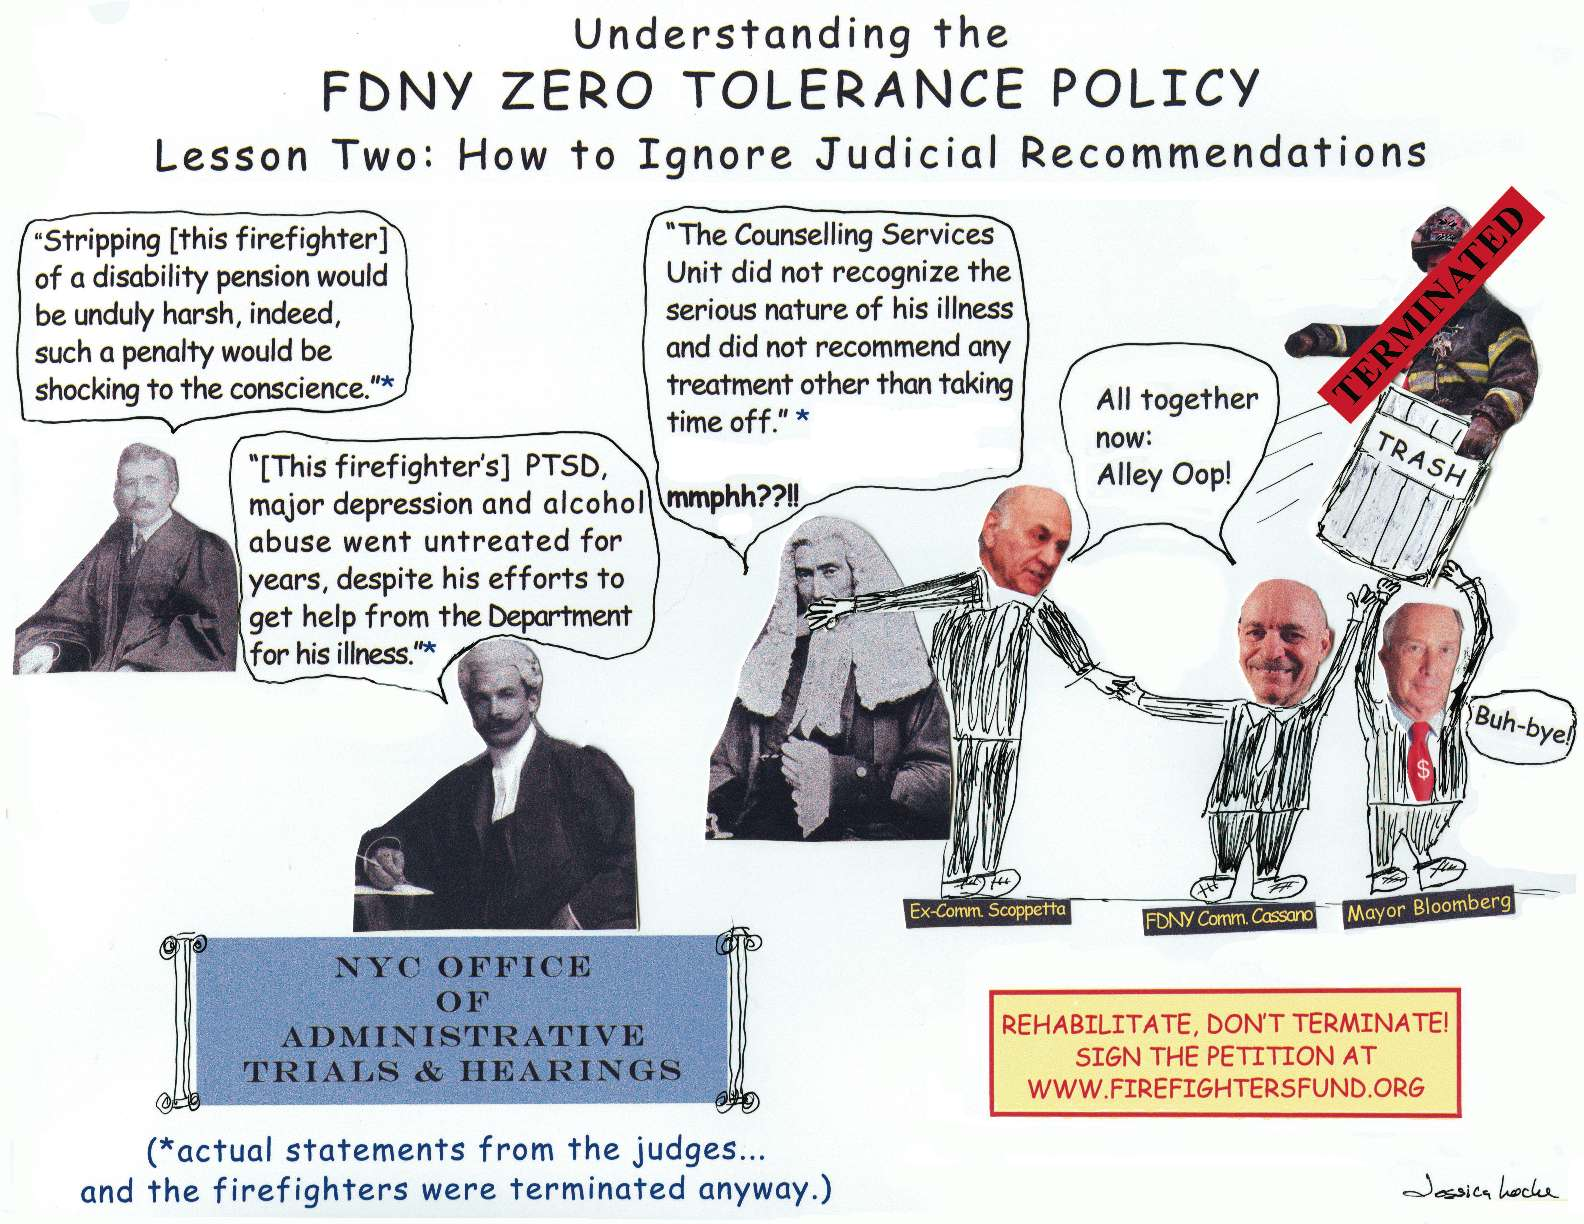 an analysis of the zero tolerance law In an important extra step, my analysis specifically assesses the impact of zero-tolerance laws pertaining to firearms, weapons, drug offenses, and assaults consistent with research by others, i find that increases in exclusionary discipline by schools are greatest when state laws leave room for interpretation and discretion on the part of .